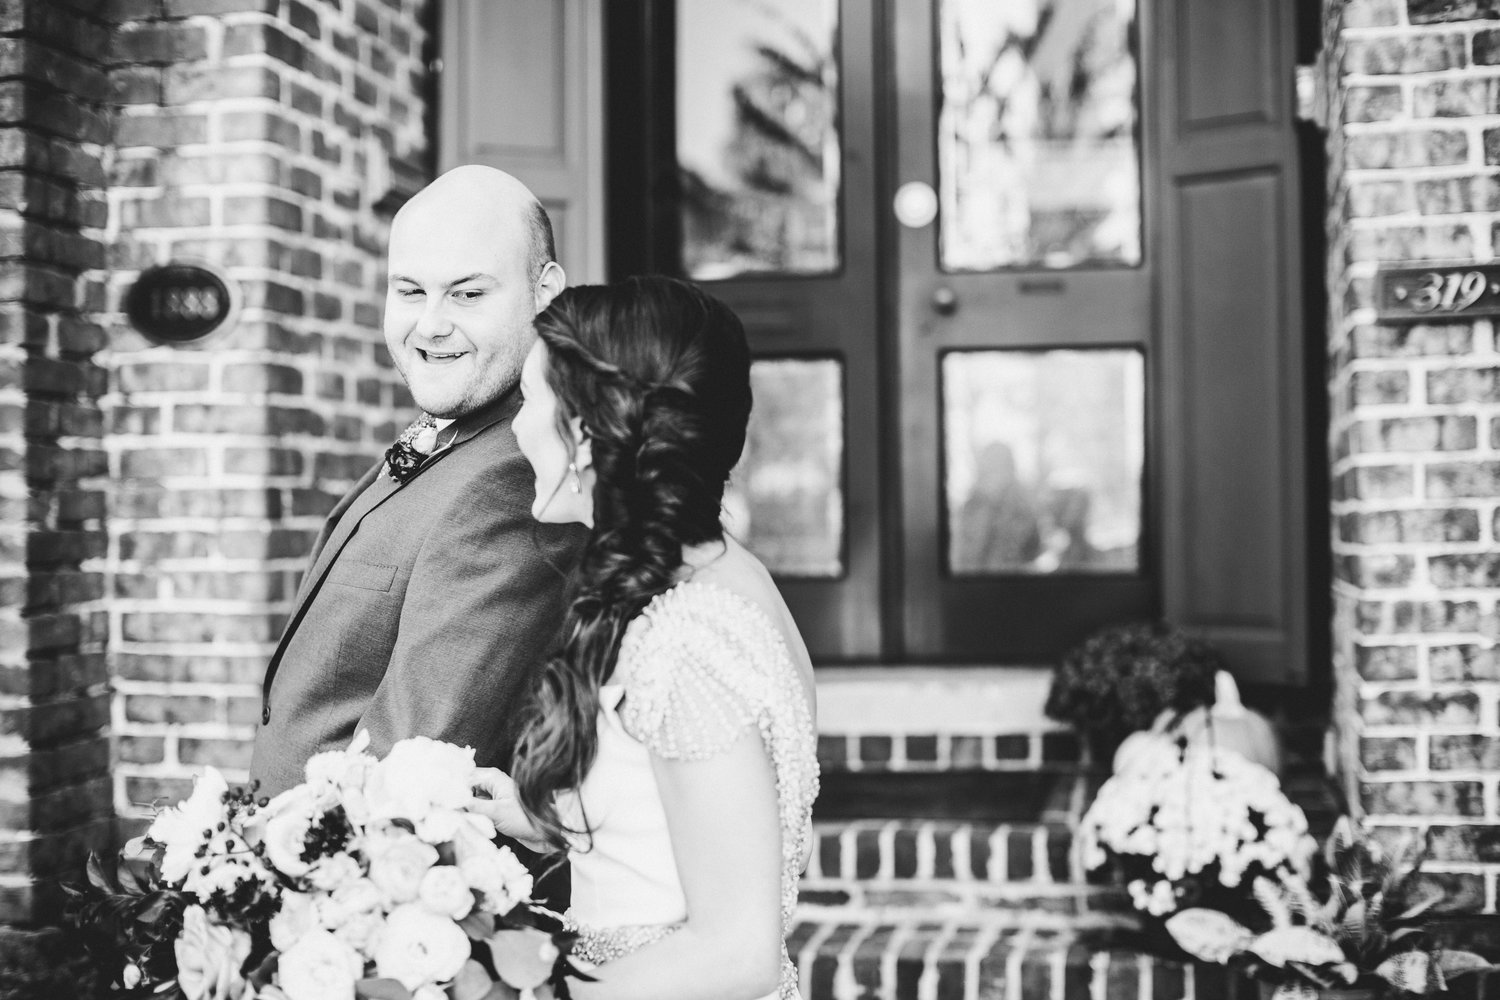 izzy-hudgins-photography-savannah-wedding-ivory-and-beau-bridal-boutique-savannah-wedding-planner-colonial-house-of-flowers-forsyth-park-wedding-old-fort-jackson-wedding-squidwed-films-savannah-boutique-savannah-weddings-10.jpg